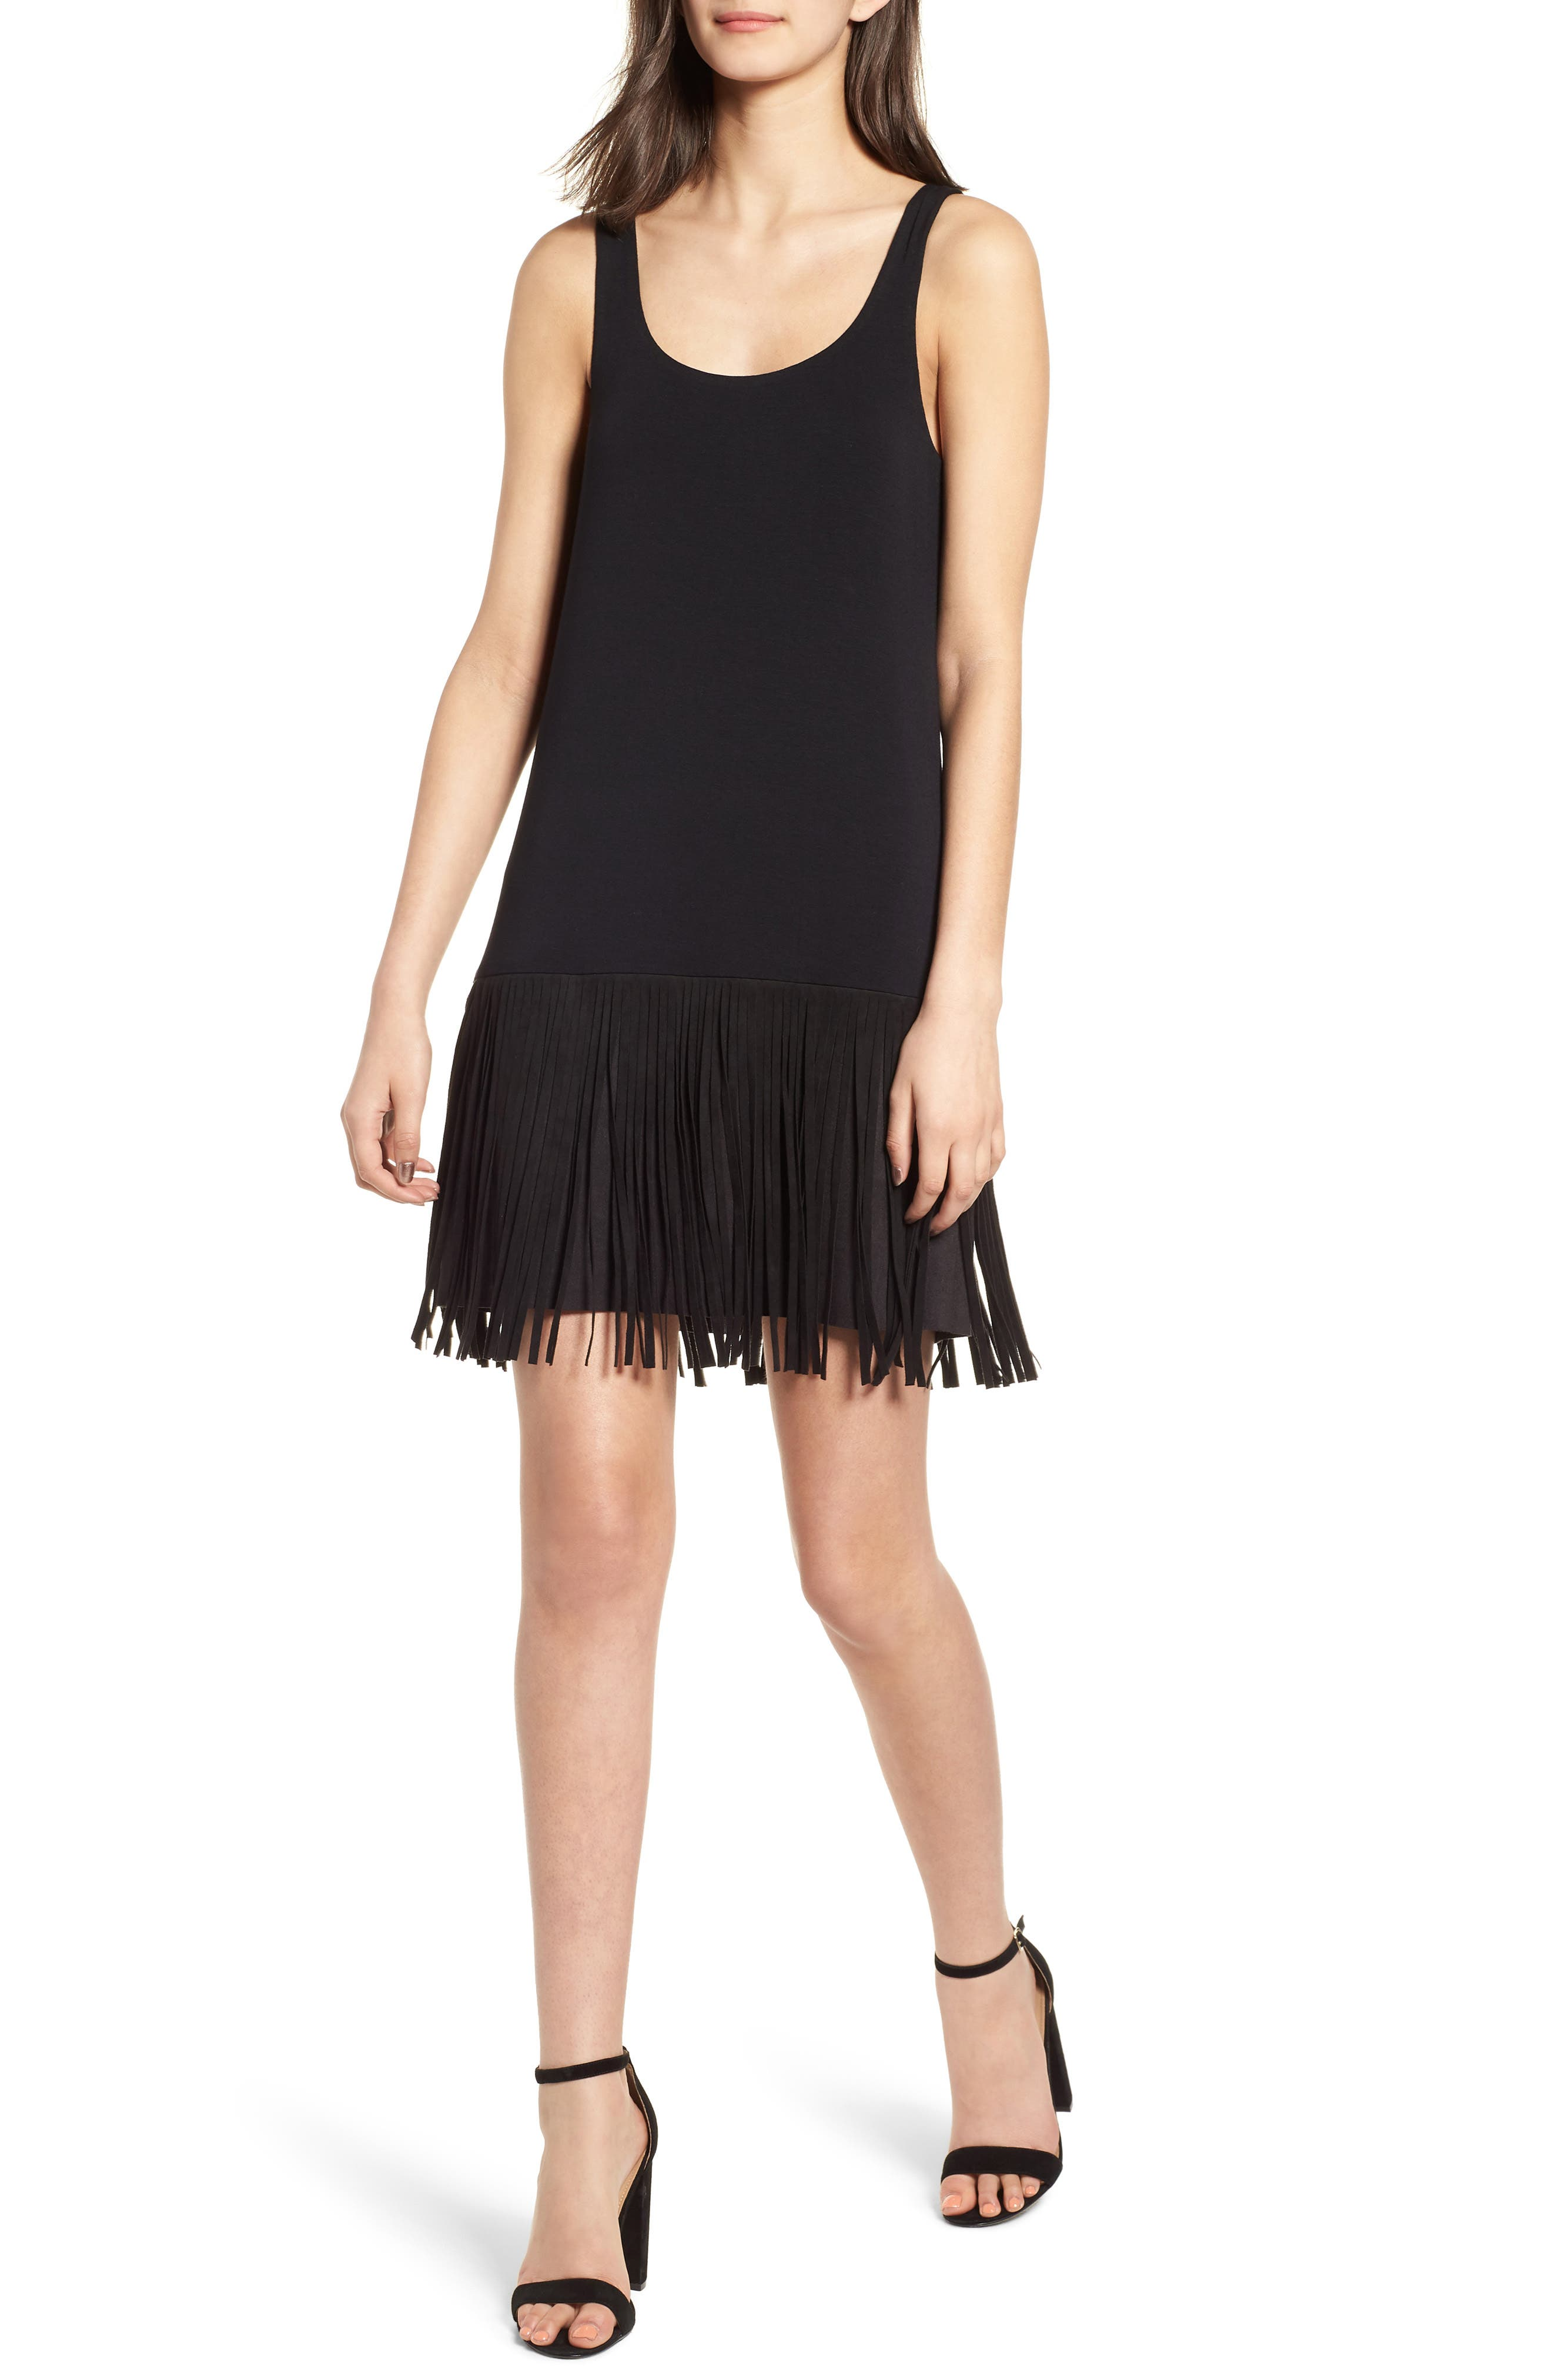 Dead or Alive Fringe Tank Dress,                             Main thumbnail 1, color,                             Black